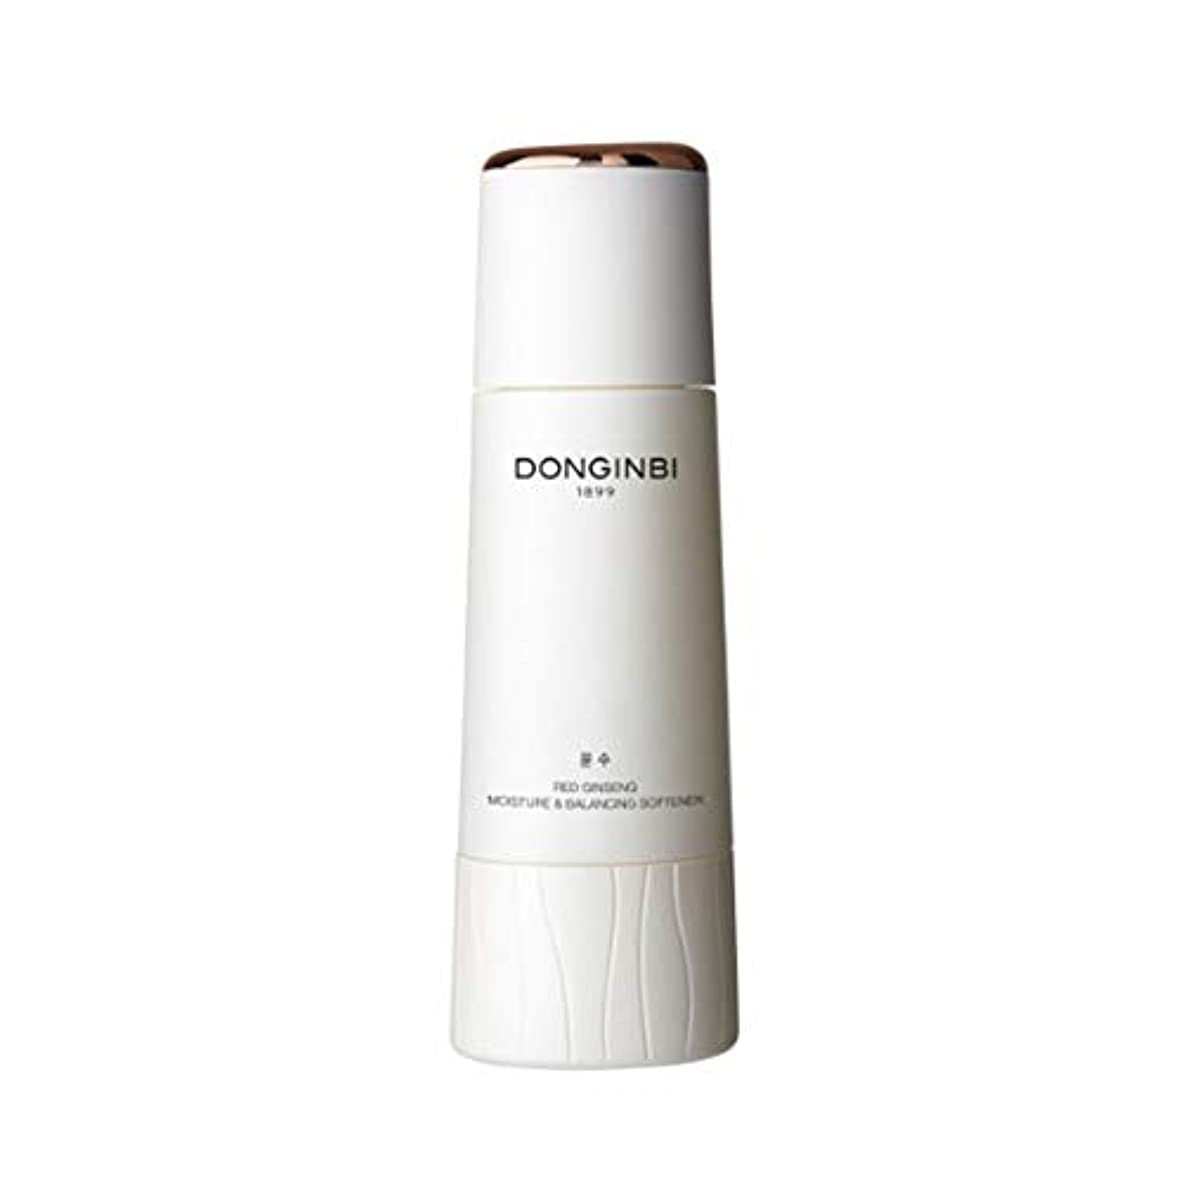 ドンインビユン水130ml紅参保湿韓国コスメ、Donginbi Red Ginseng Moisture&Balancing Softener 130ml Korean Cosmetics [並行輸入品]